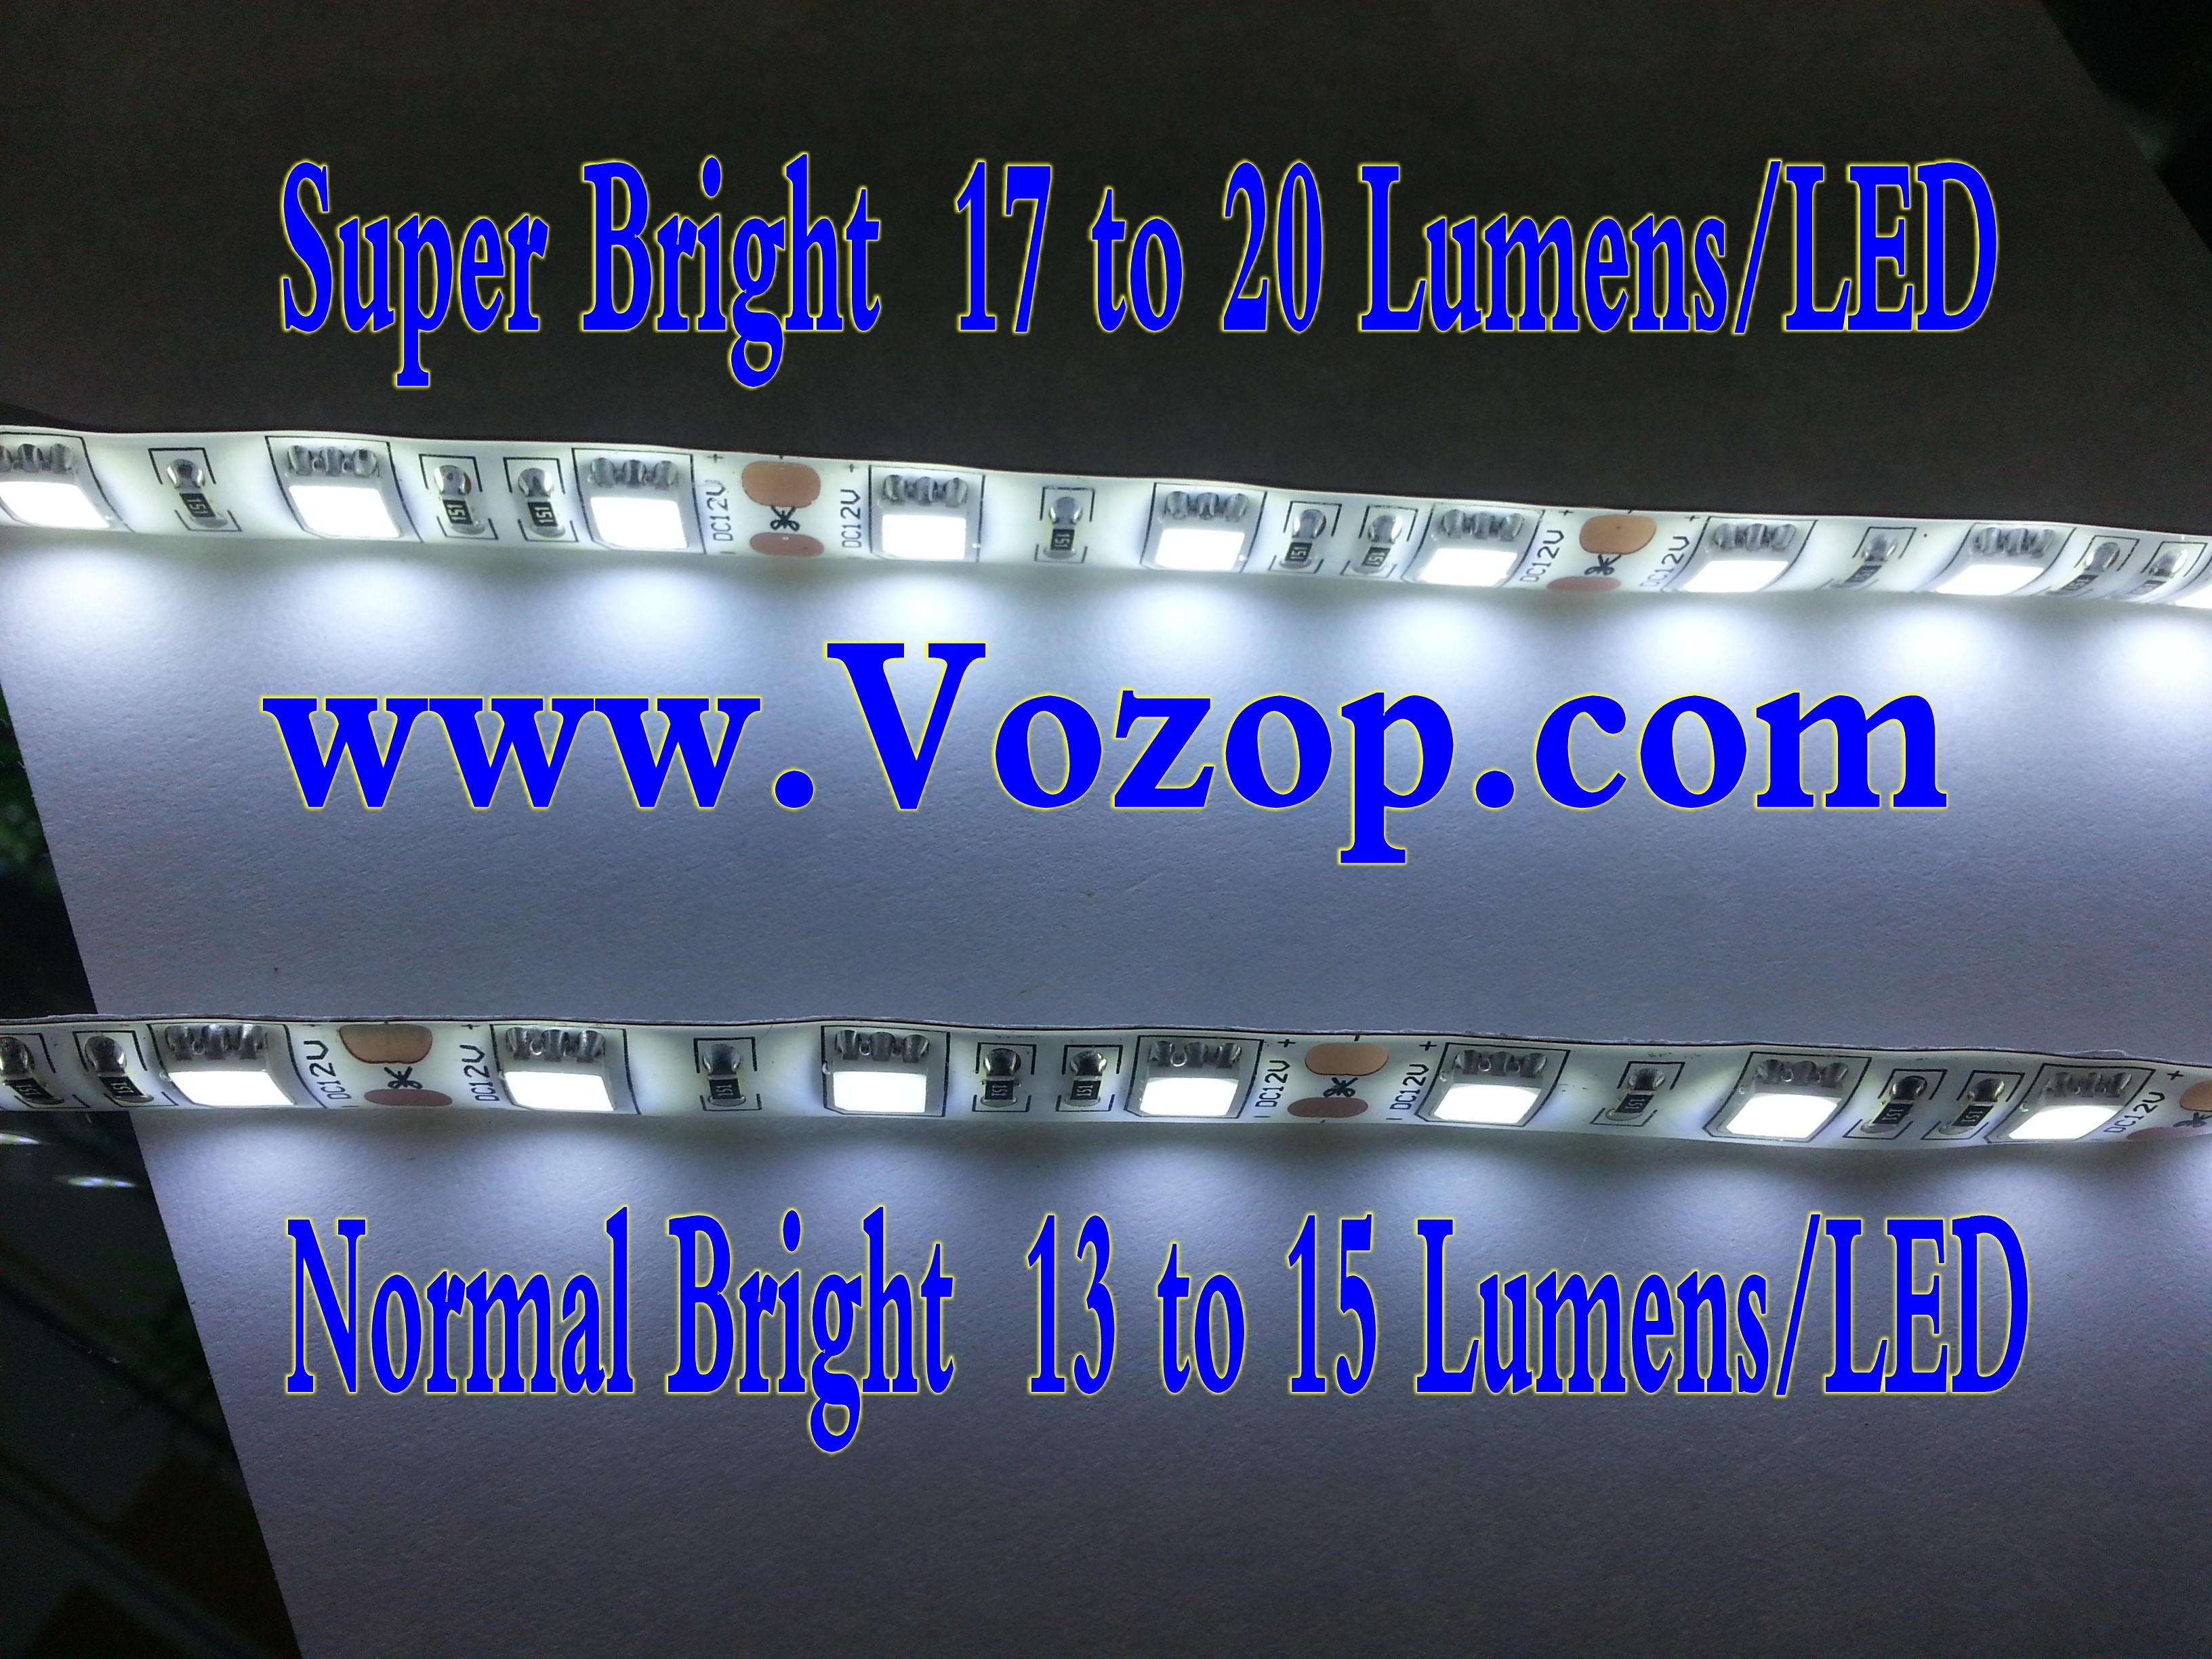 Ultra bright high lumen natural pure white brightest 5050 led strip ultrabright50505m300ledspurewhite12vledstriplightswaterproof ultrabrightsmd50505m300ledspurewhite12vledstriplightswaterproof mozeypictures Images